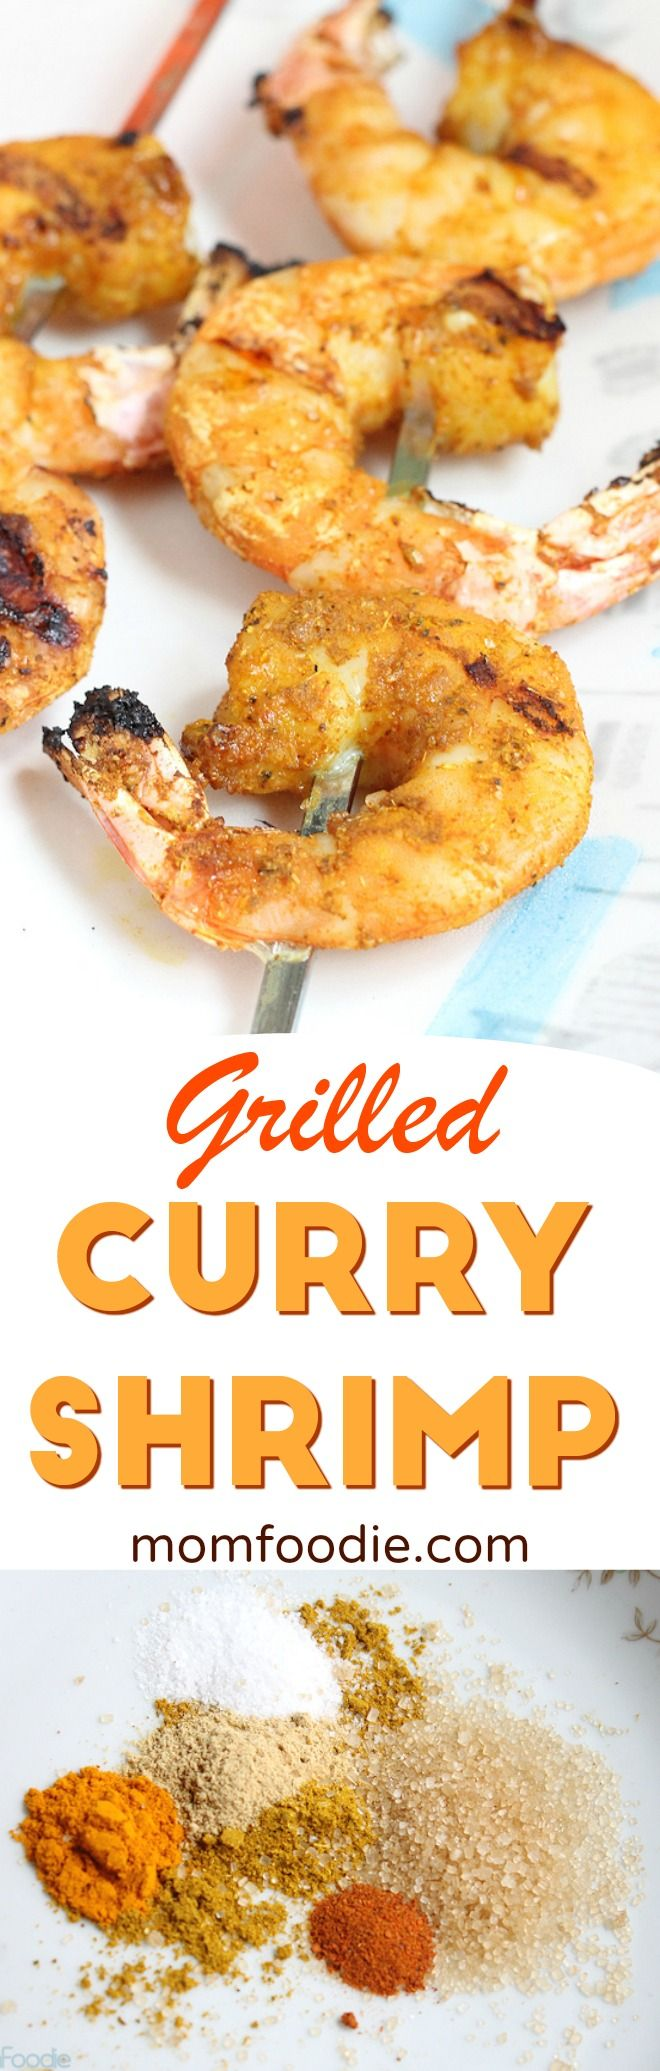 Grilled Curry Shrimp - Grilled wild shrimp in a sweet & spicy curry dry rub. #shrimp #curry #grilling